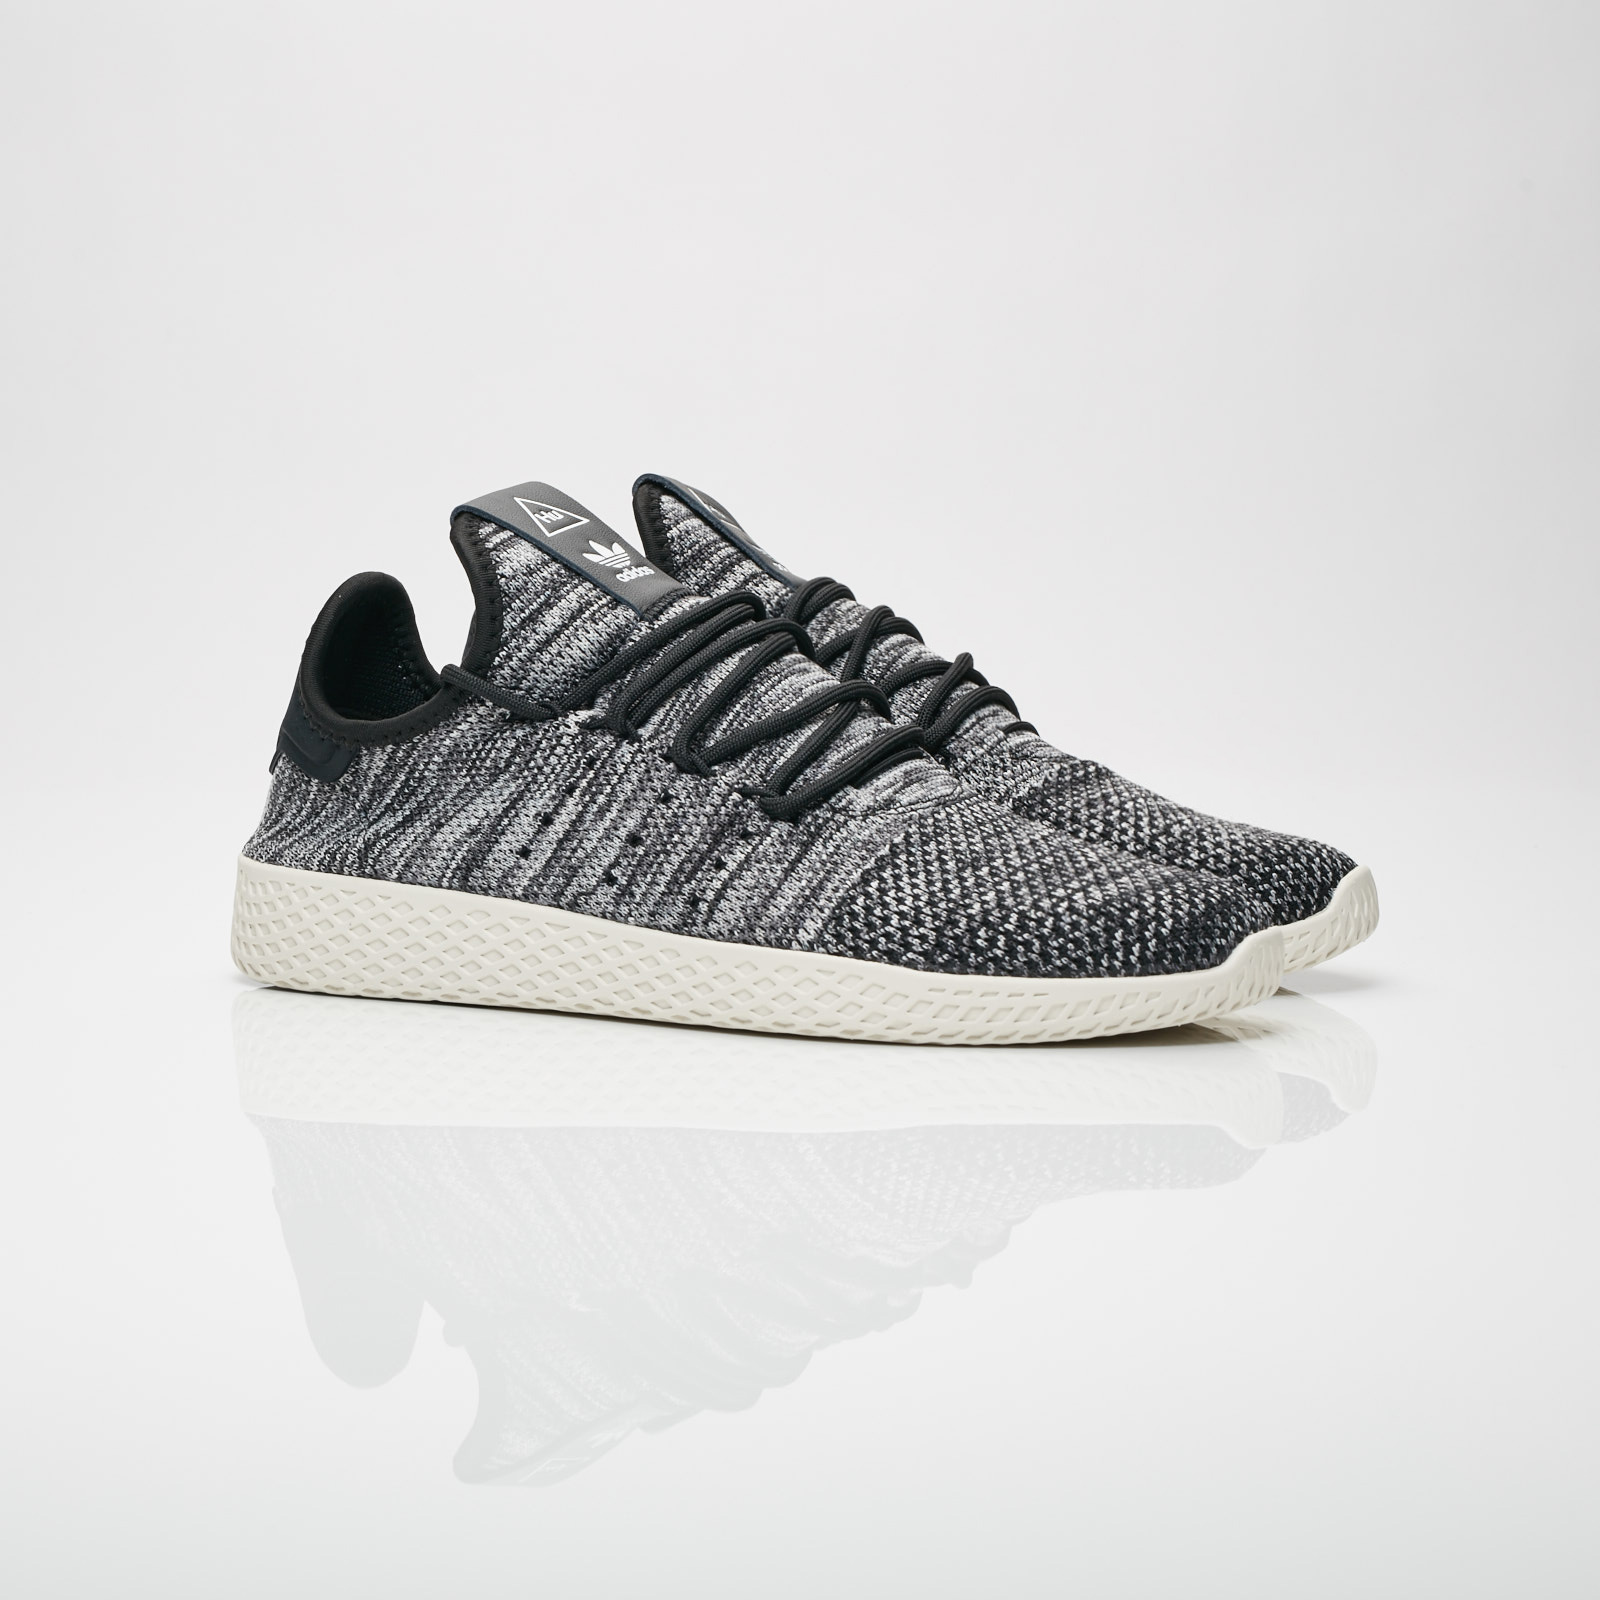 b92b9f788a76a adidas Pharrell Williams Tennis HU PK - Cq2630 - Sneakersnstuff ...